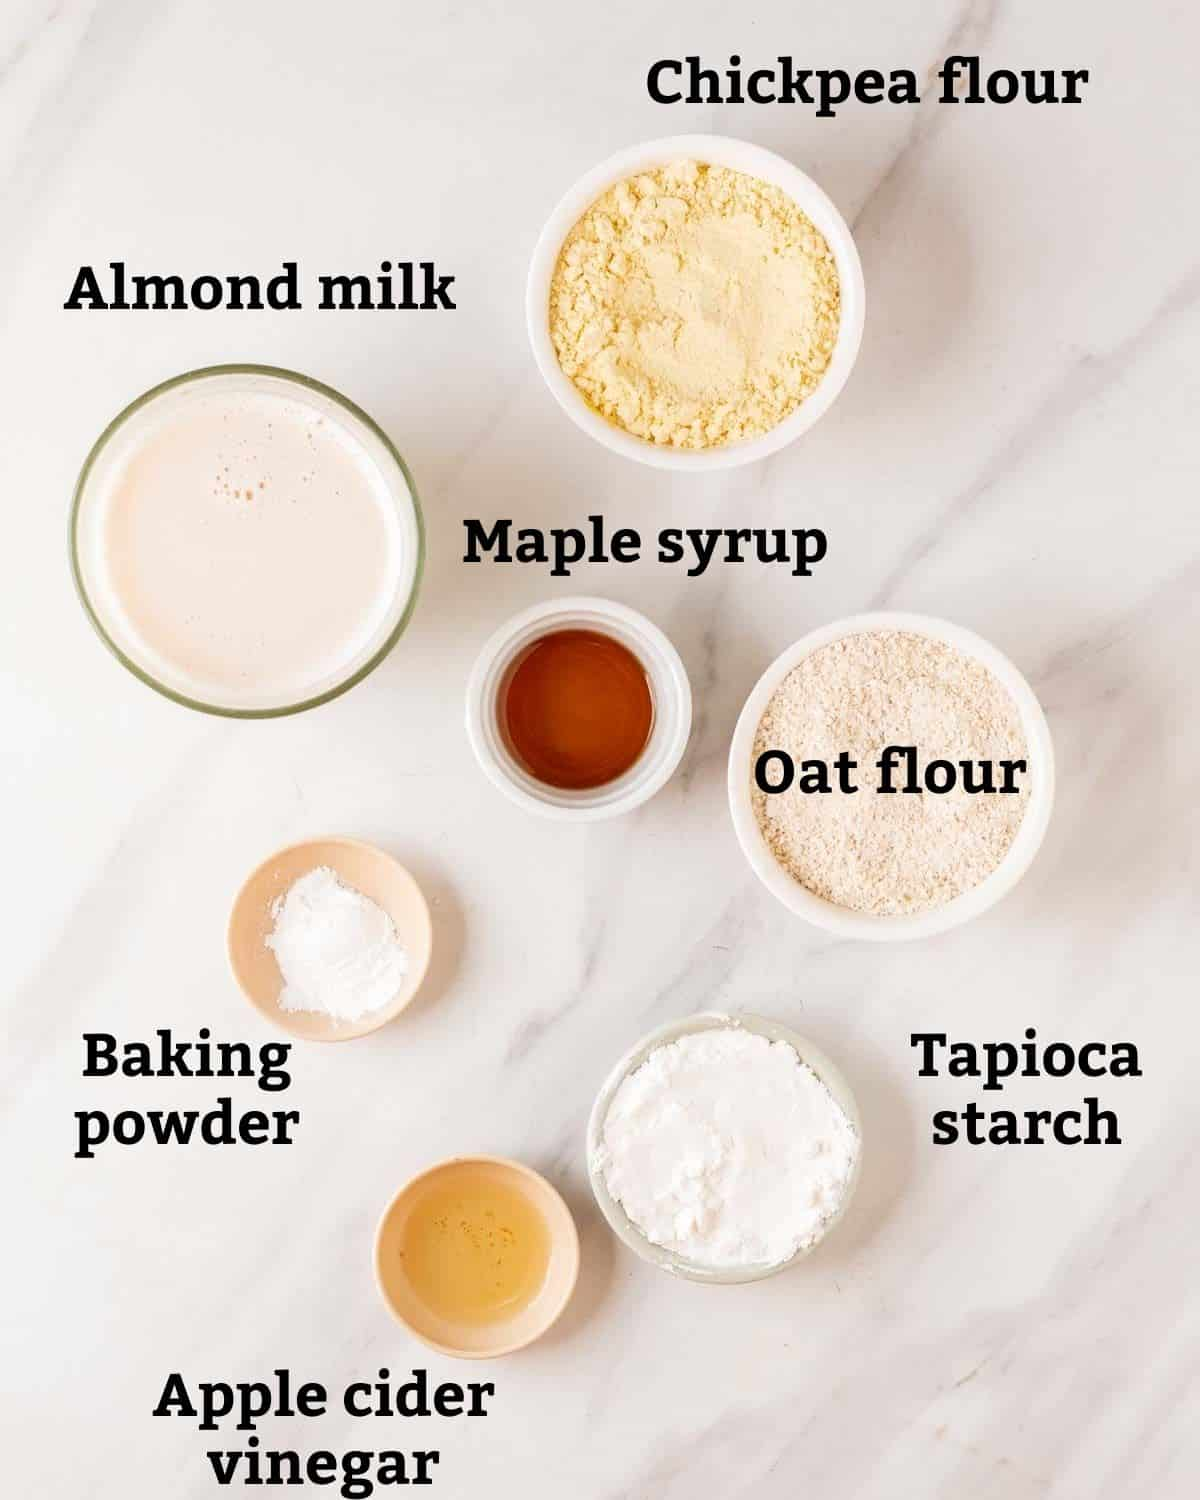 Ingredients needed like oat flour, chickpea flour, milk, maple syrup and tapioca starch.